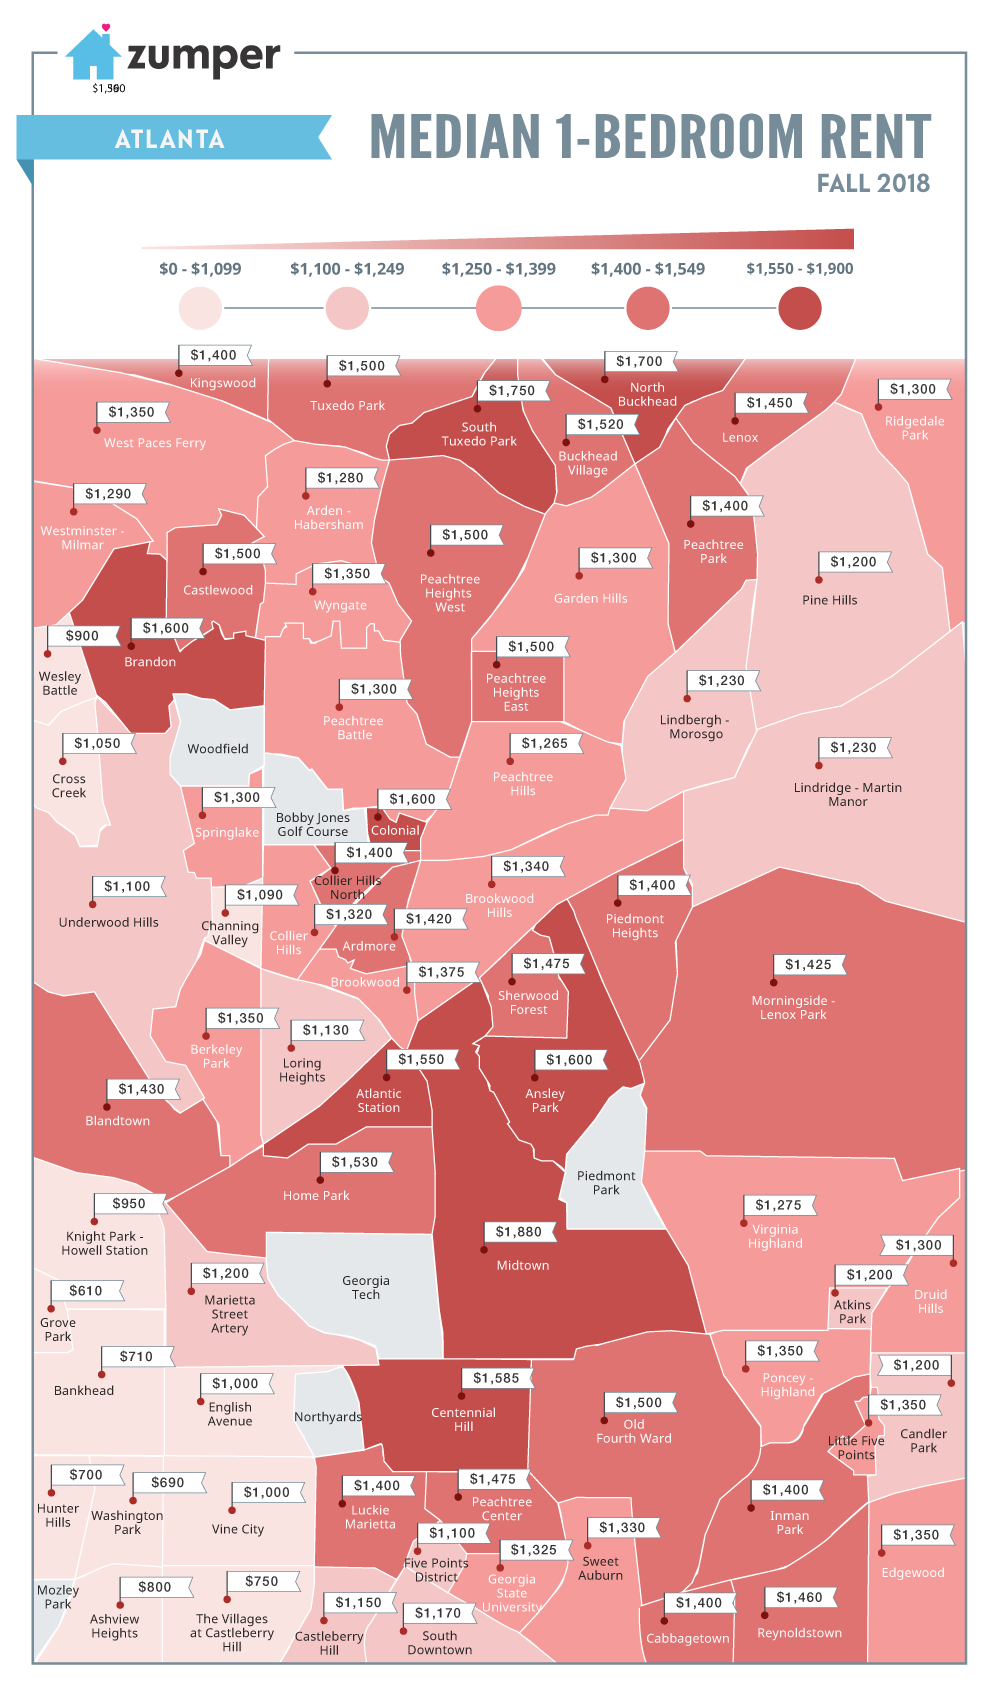 Rent Price Map Mapping Atlanta Neighborhood Rent Prices (Fall 2018)